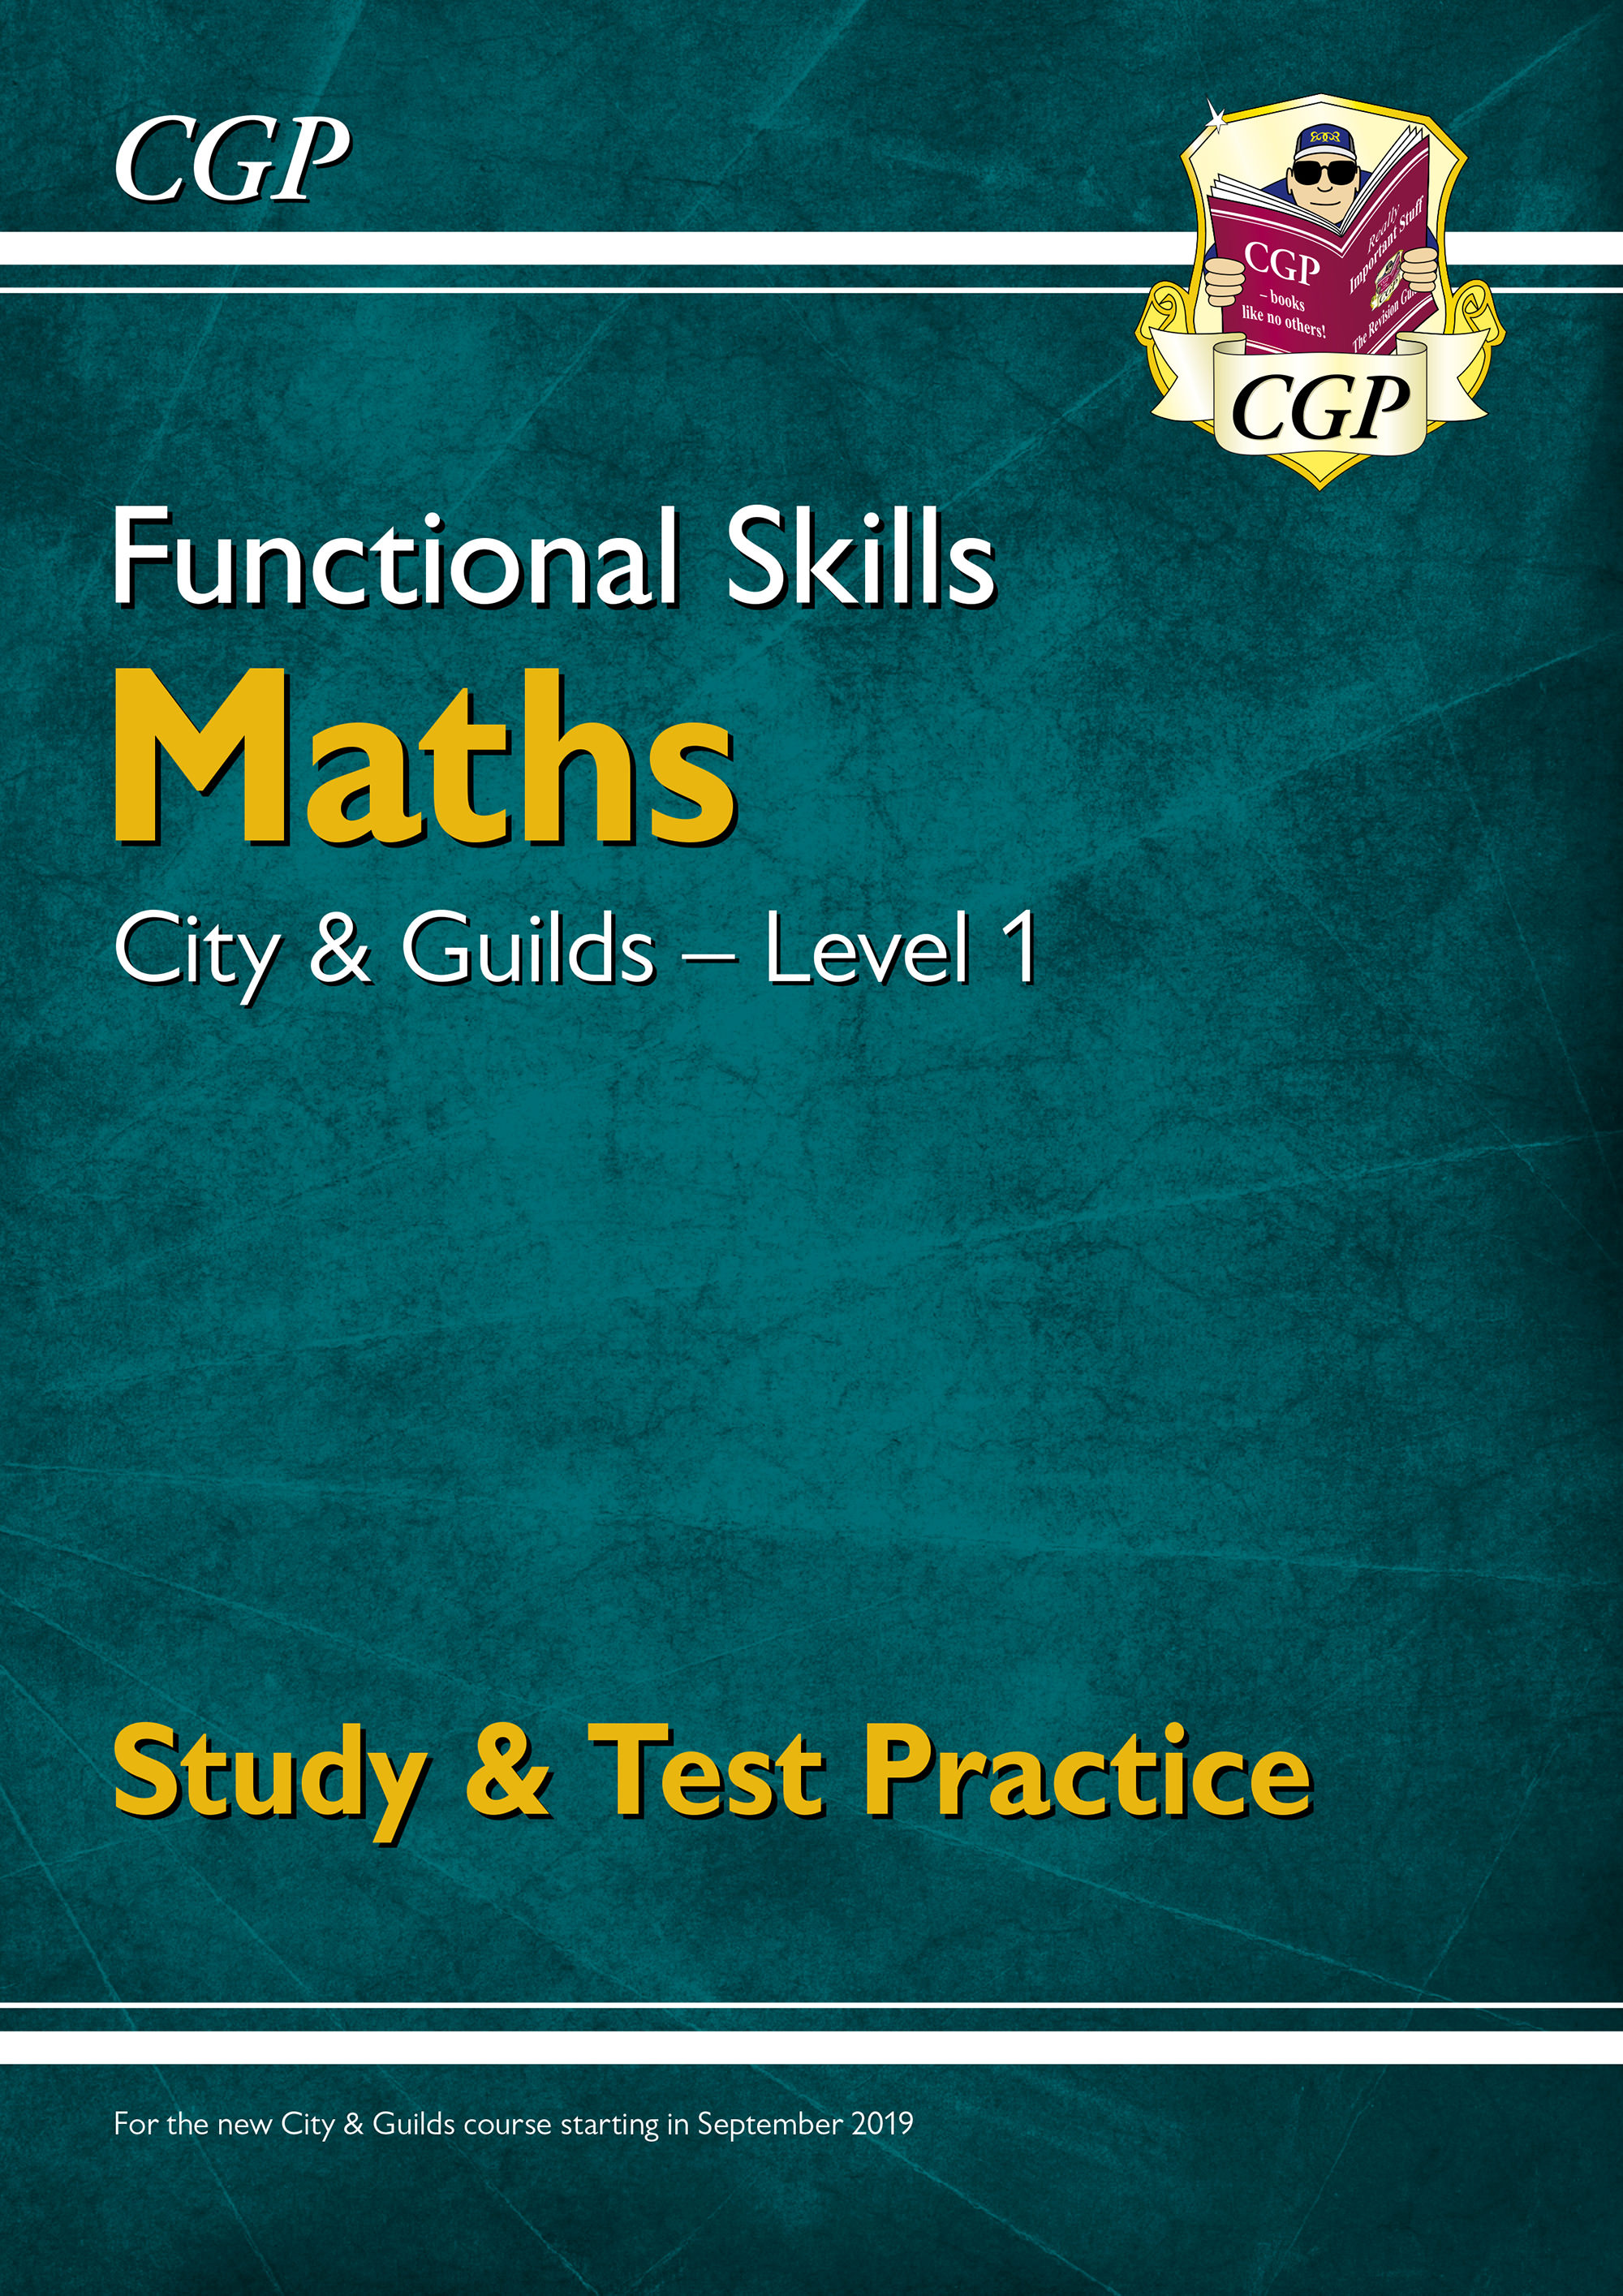 M1CGSRA1DK - New Functional Skills Maths: City & Guilds Level 1 - Study & Test Practice (for 2020 &